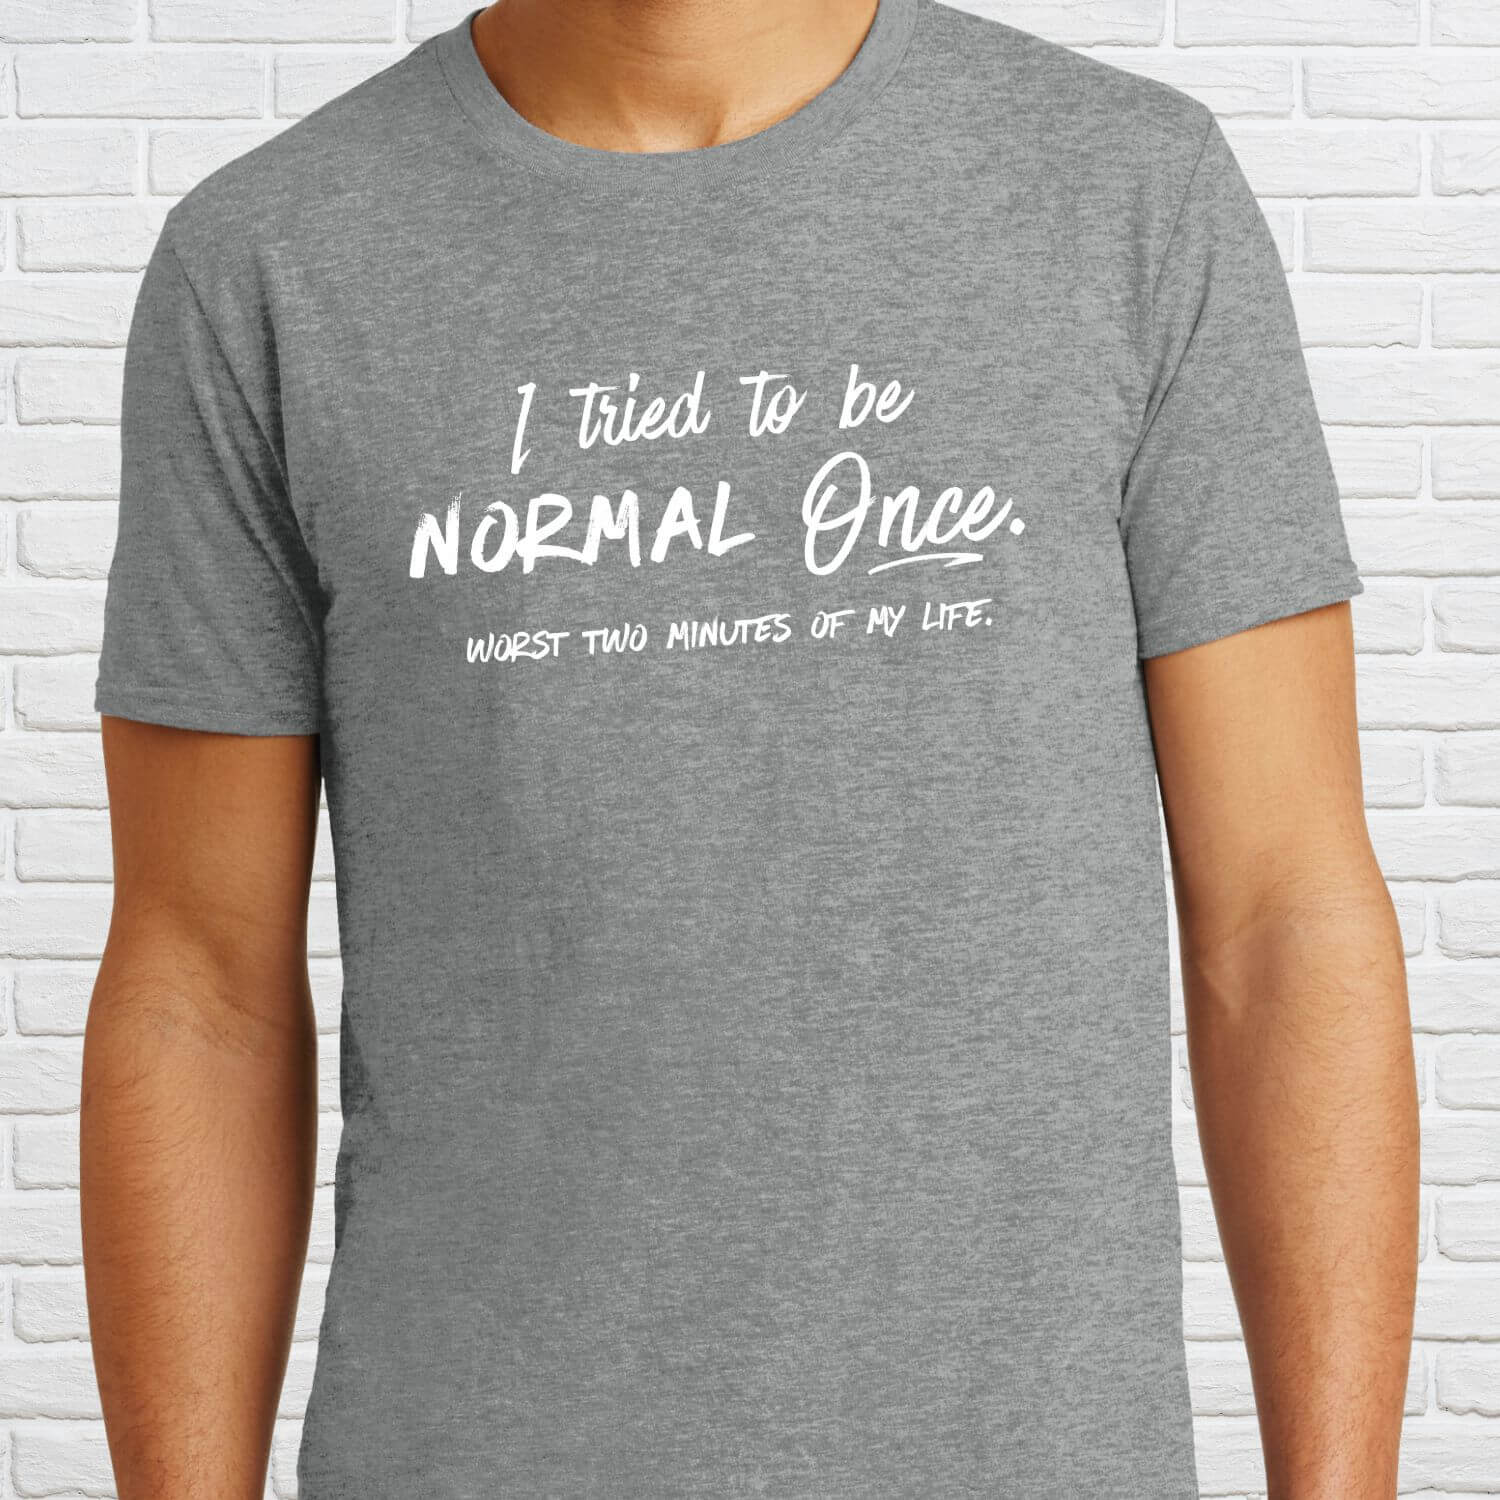 Tried-Normal-Once-Graphic-Tee-Shirt